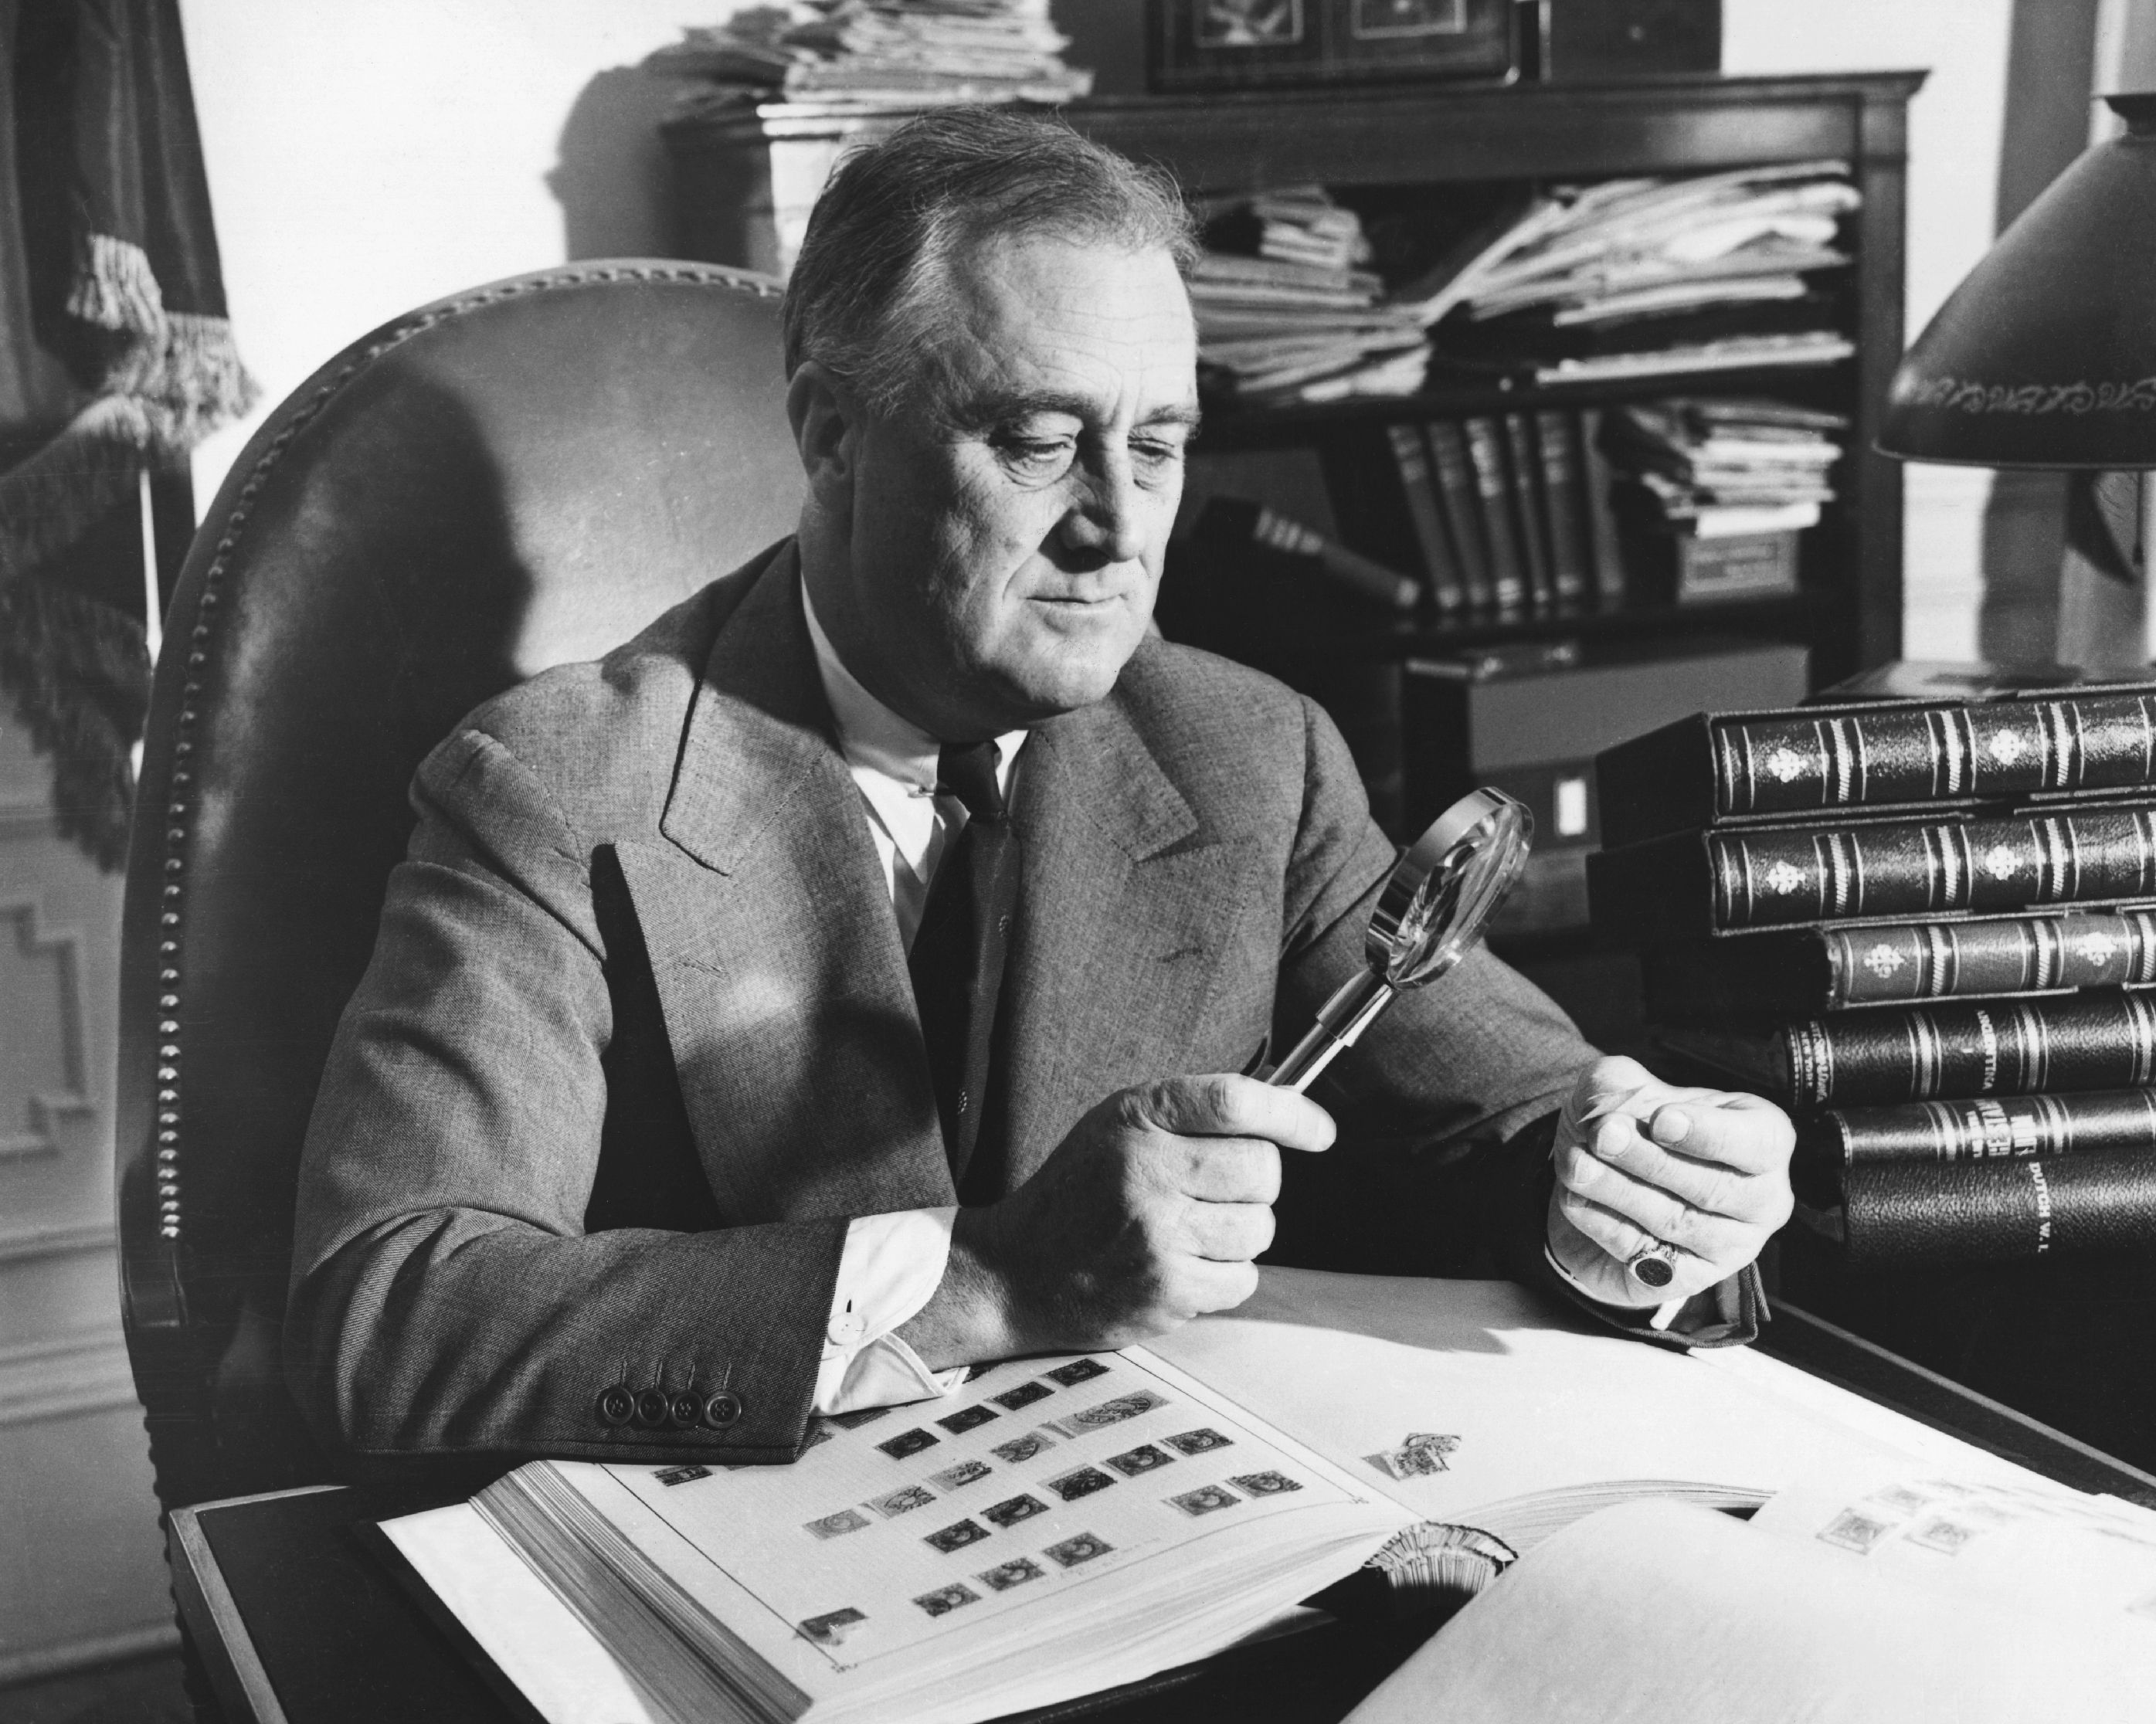 Philatelist-In-Chief: U.S. President Franklin D. Roosevelt was an avid stamp collector and had a hand in designing most stamps issued by the United States during his administration (1933-1945). He is quoted as saying,